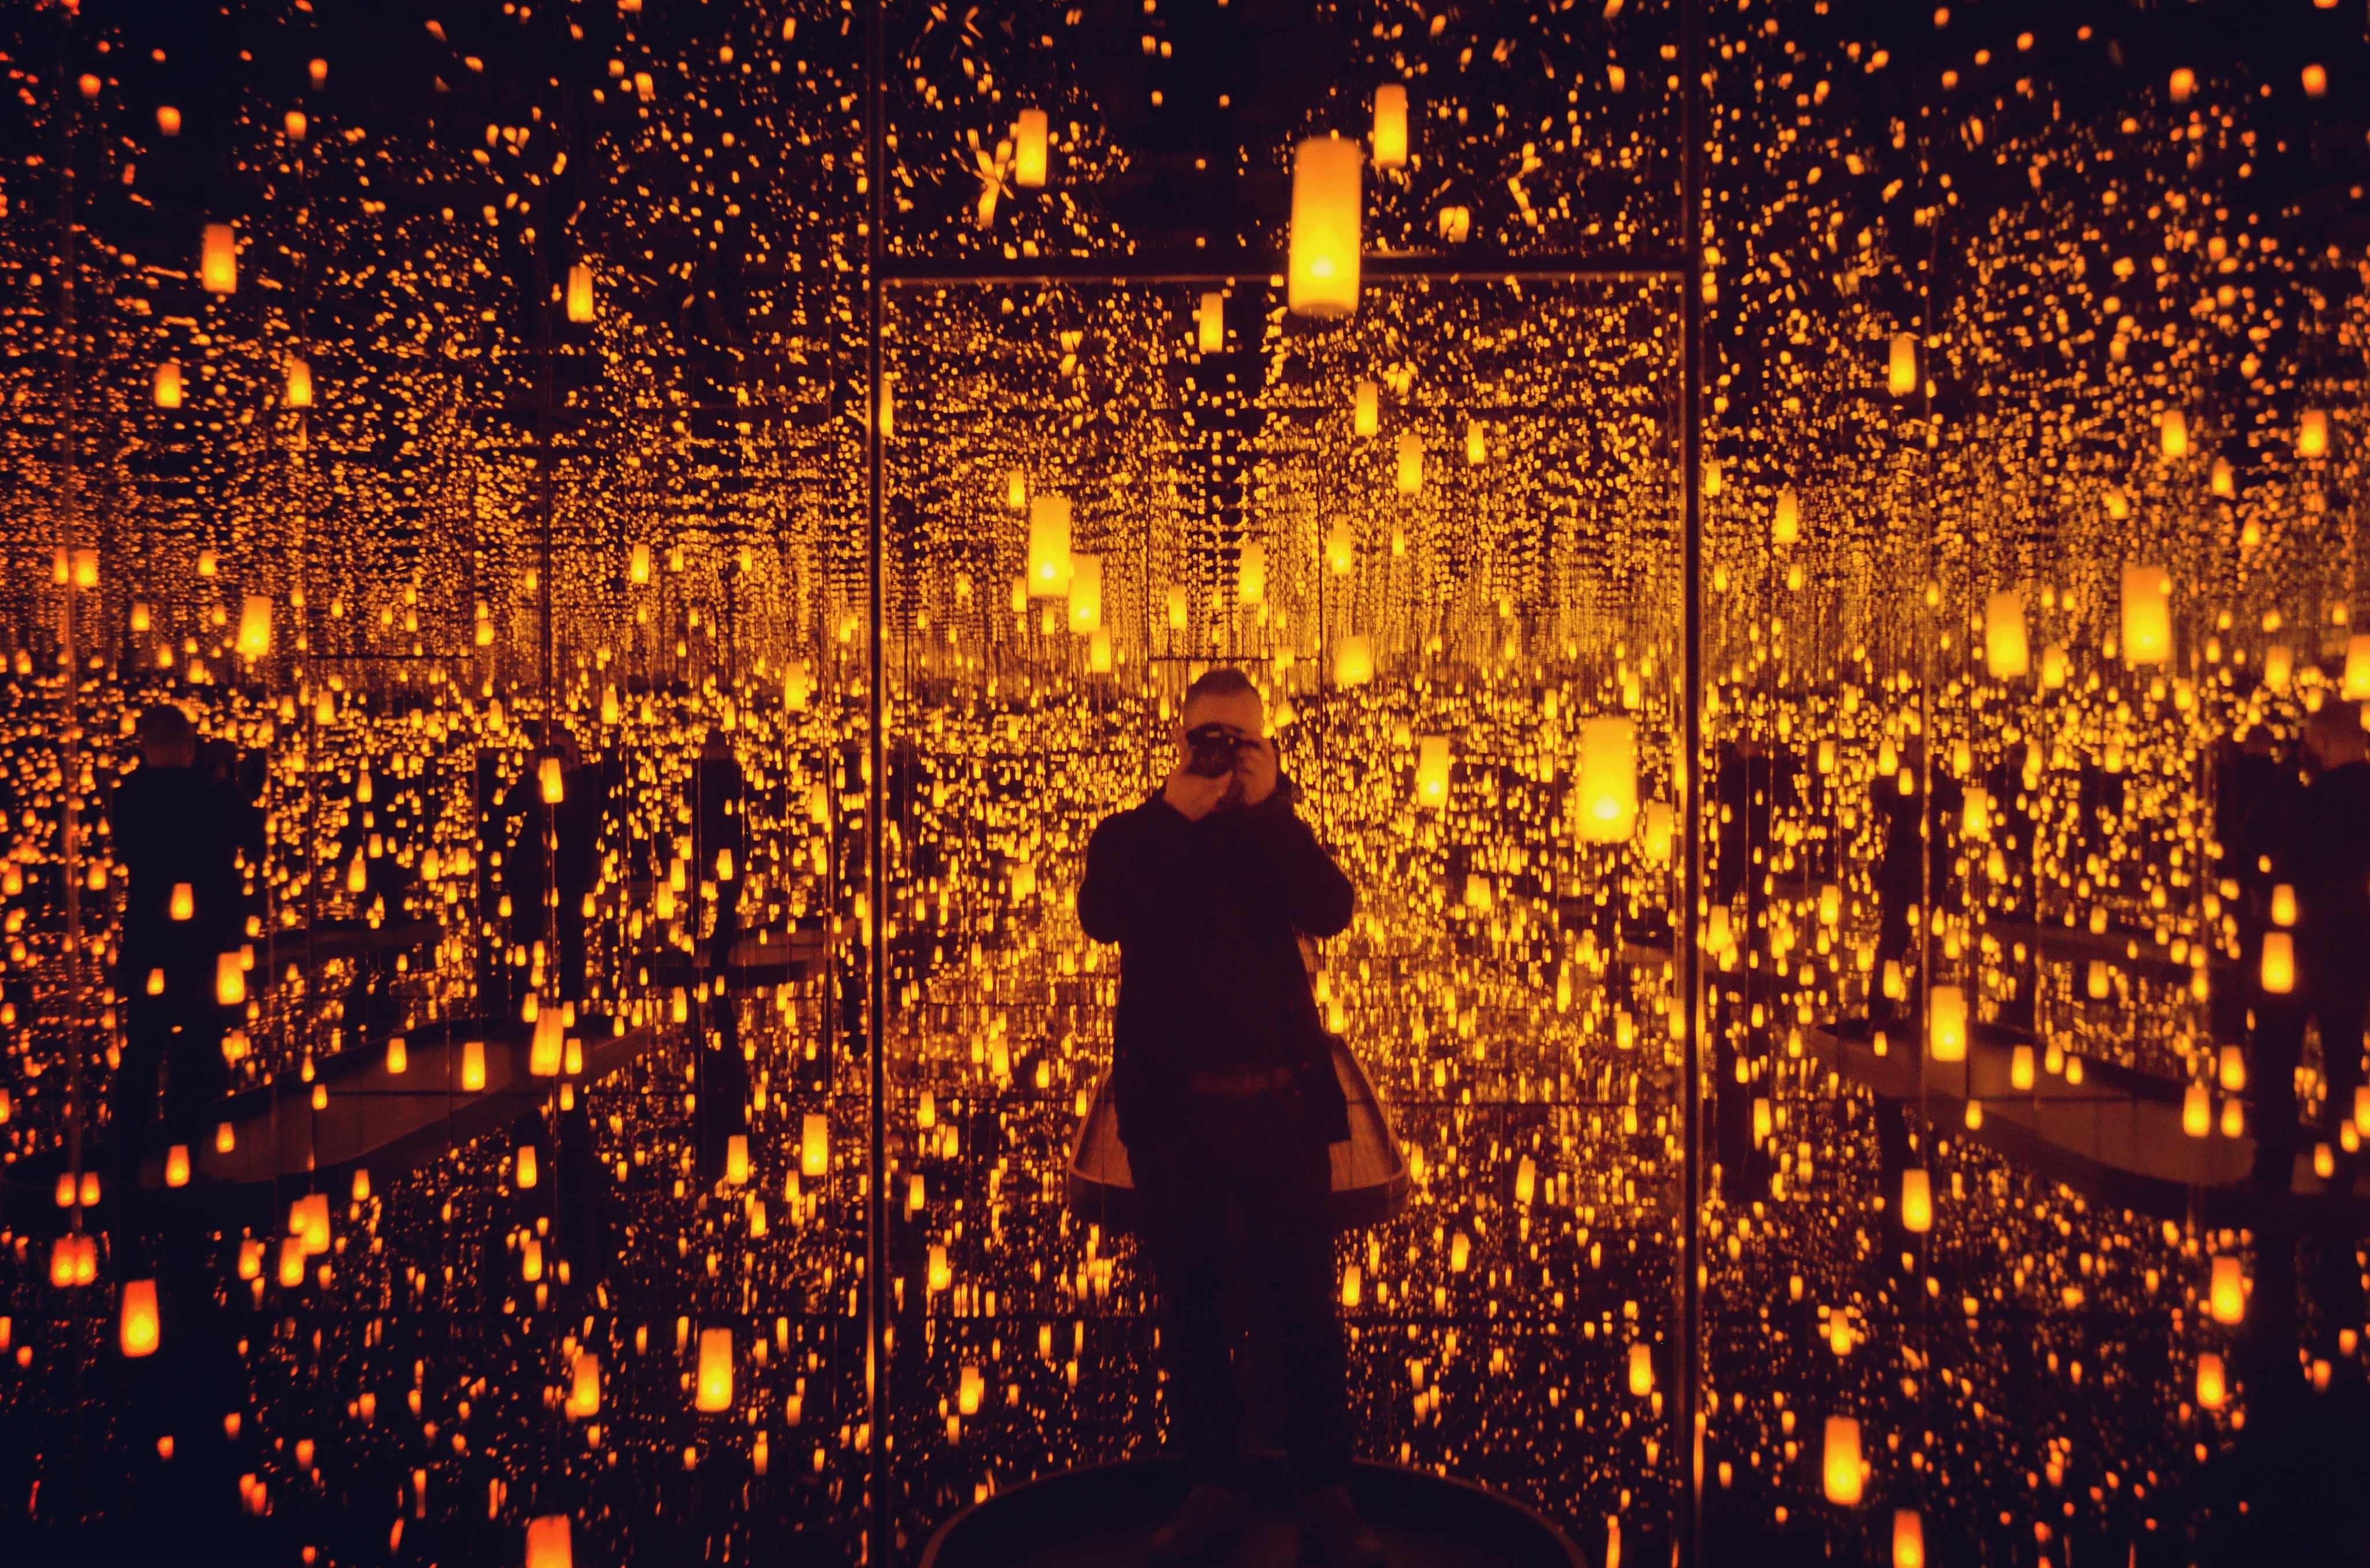 It's the last week to catch Yayoi Kusama: Infinity Mirrors at the AGO